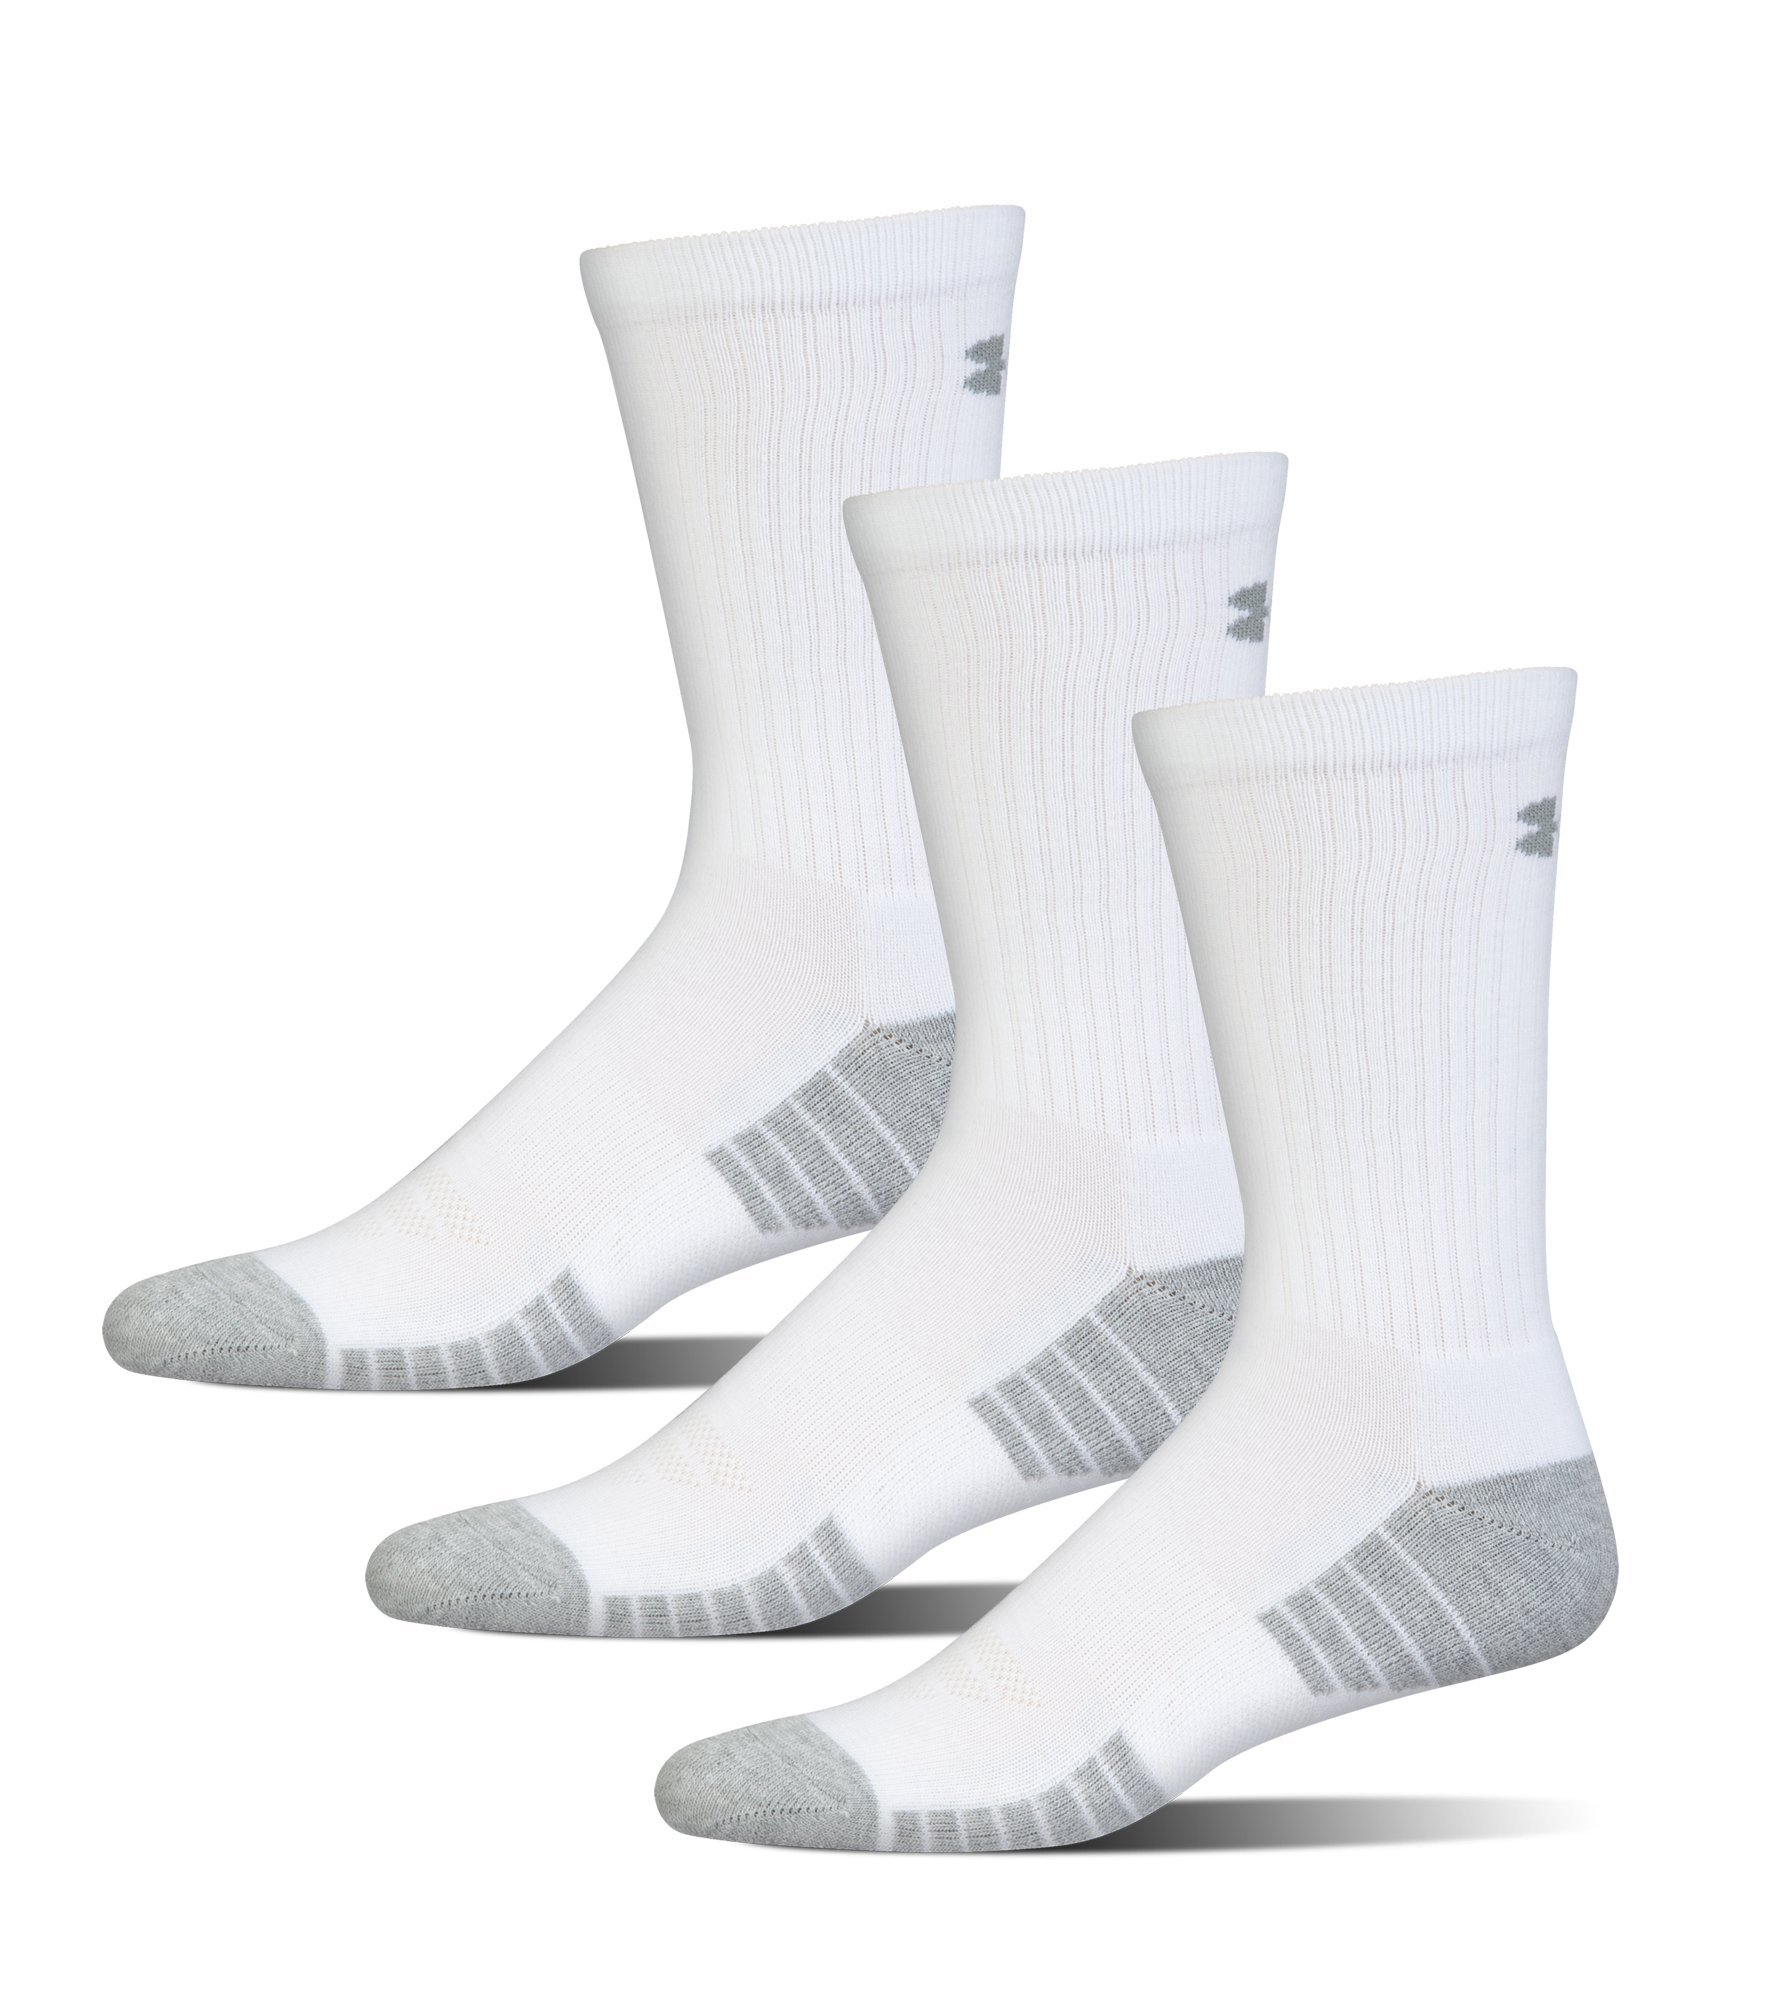 Under Armour Men's Heatgear Tech Crew Socks, White, Medium (3 Pair Pack) by Under Armour